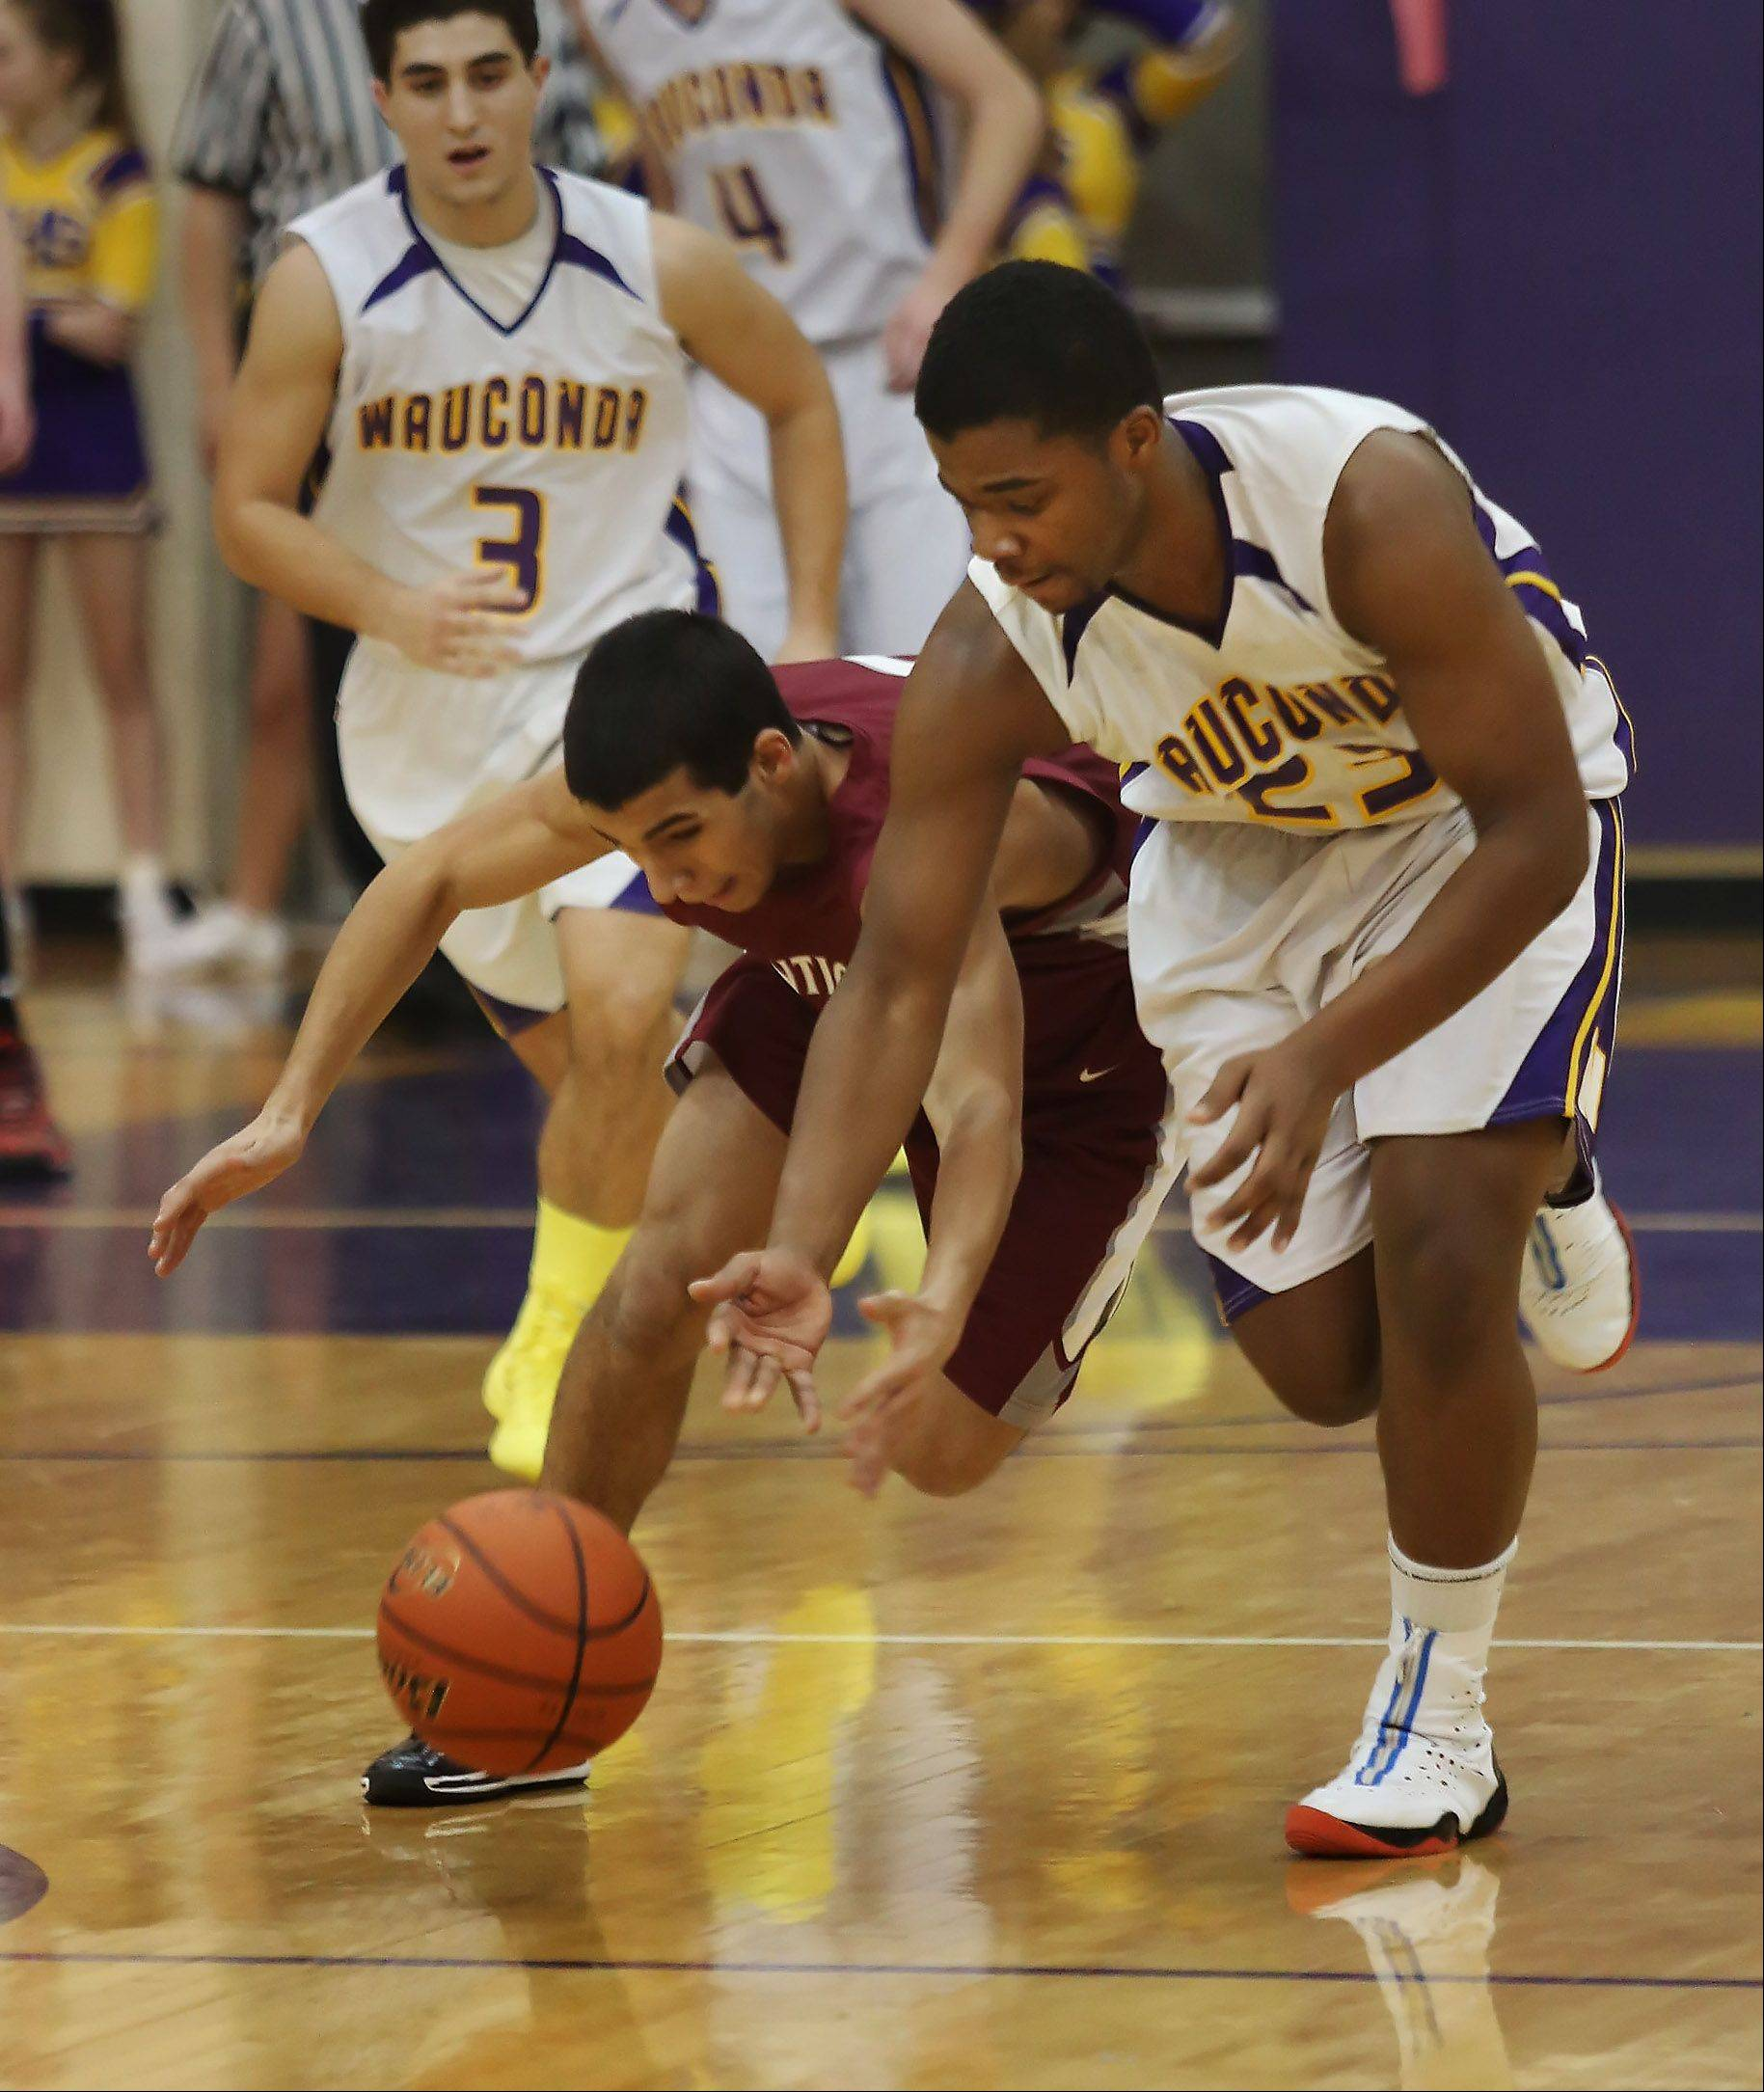 Wauconda forward Dion Head goes after a loose ball with Antioch guard Hamza Abdellatif on Thursday at Wauconda.